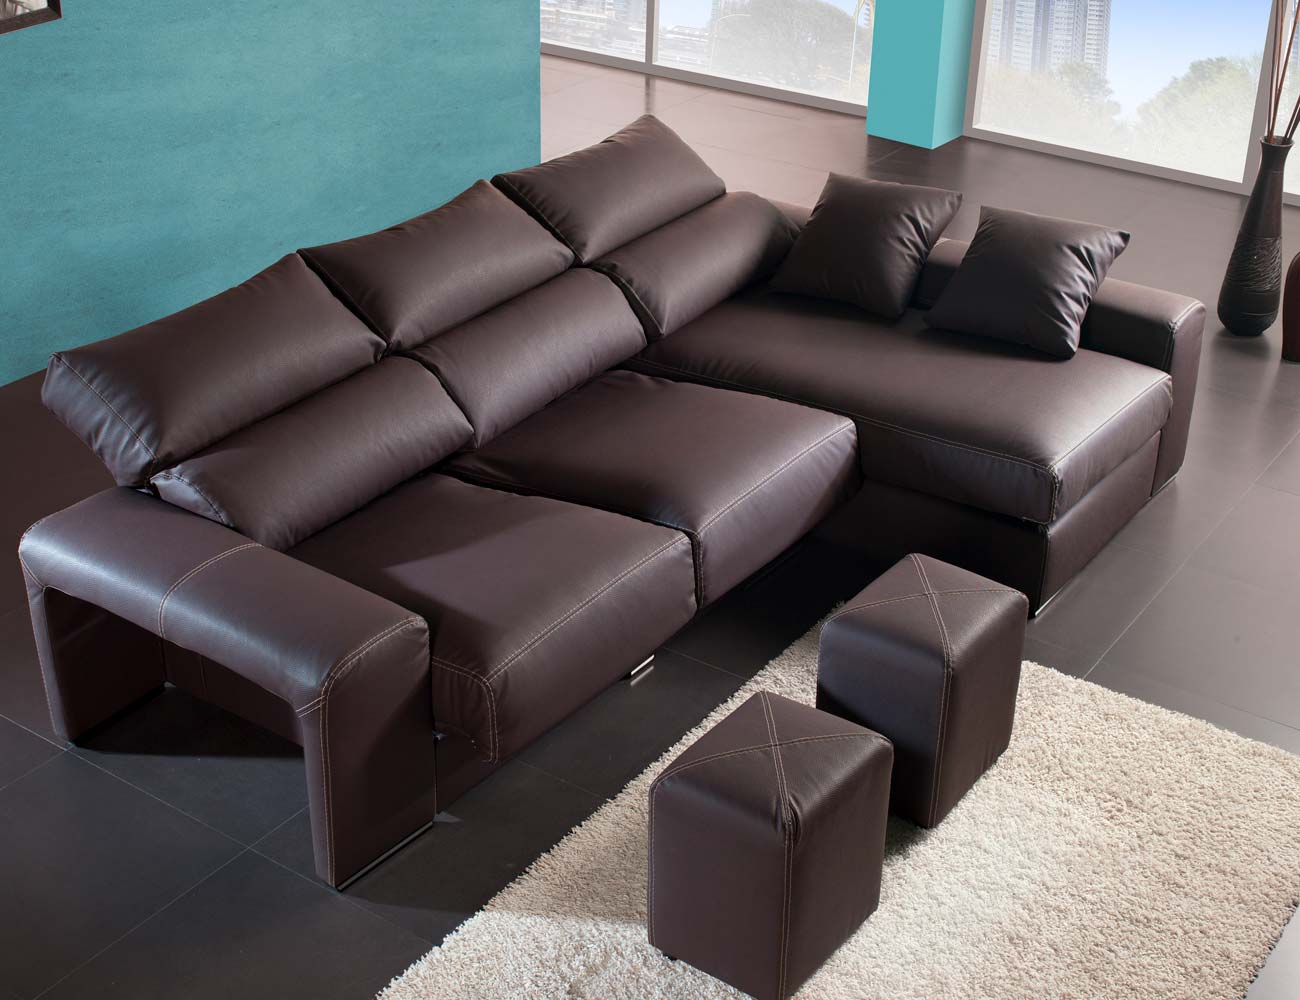 Sofa chaiselongue moderno polipiel chocolate poufs taburetes49